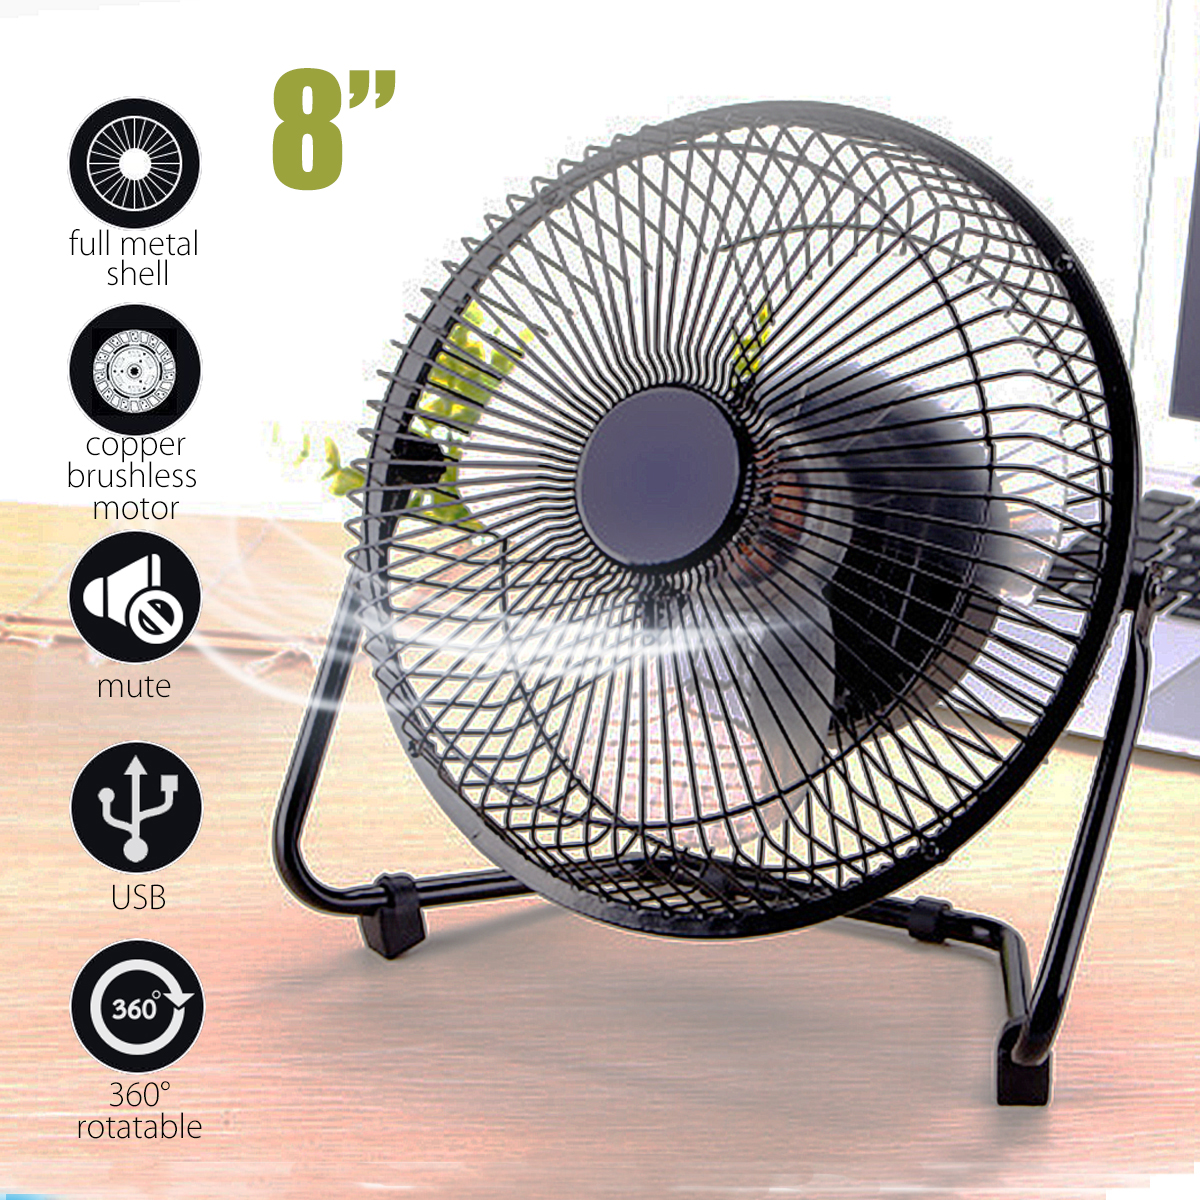 Warmtoo Portable 8'' Metal Electrical 360 Degree Rotatable USB Fan Cooler Rechargeable Battery Desk Fan For Laptop PC цена